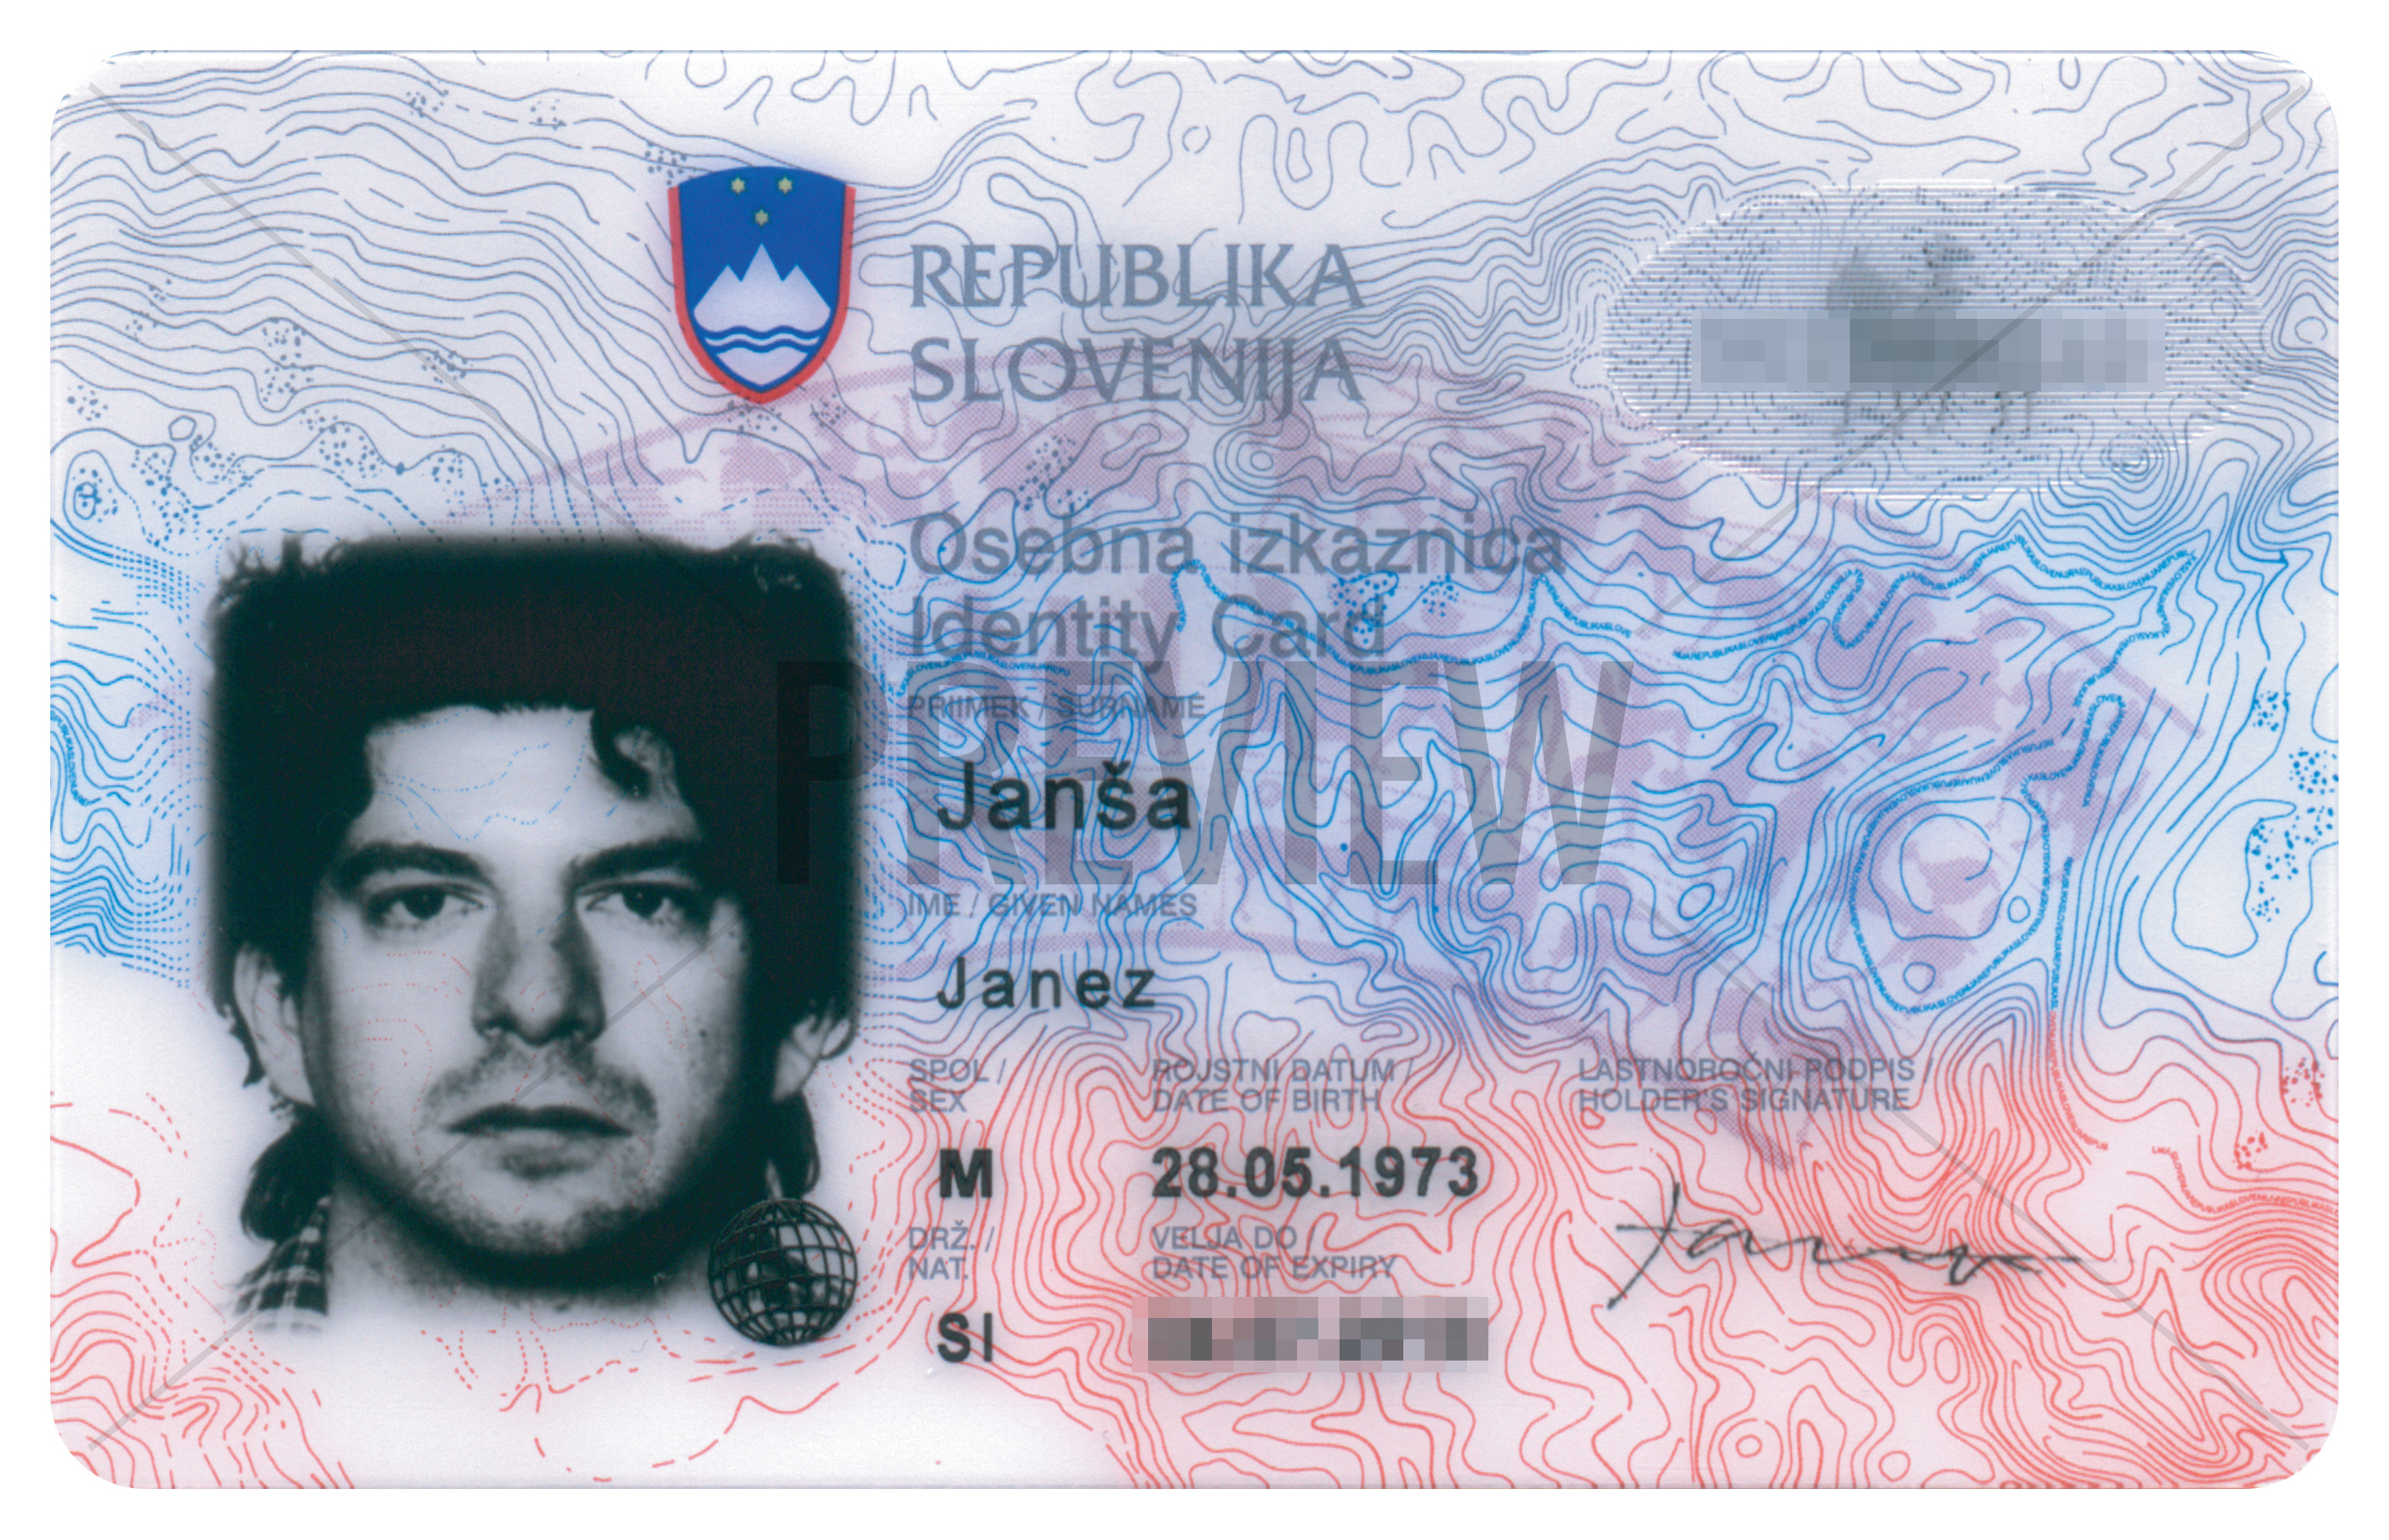 002293264 (Identity Card), Ljubljana, 2007. Print on plastic